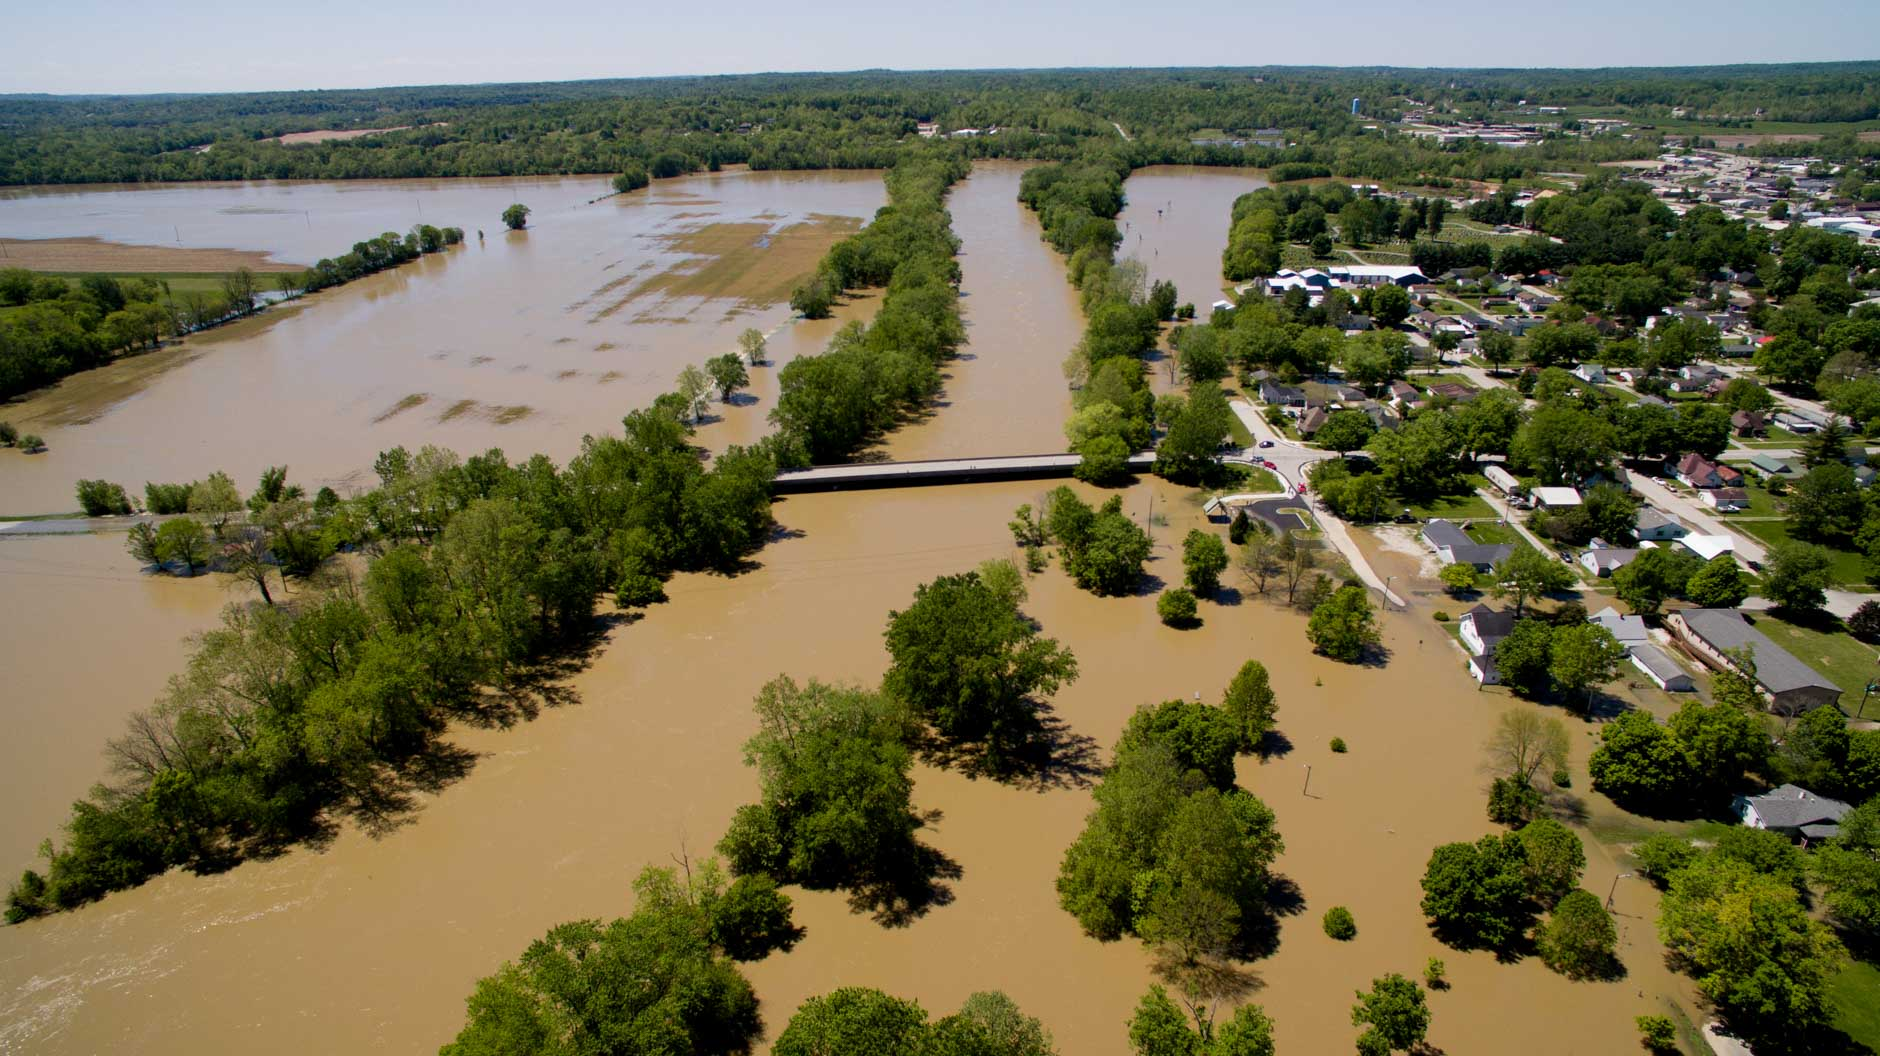 Flooding is pictured looking west along the White River near Cooper's Commons park in Spencer, Indiana on Sunday, May 7, 2017. The Old Ellettsville Road bridge is pictured at center. (Photo by James Brosher)